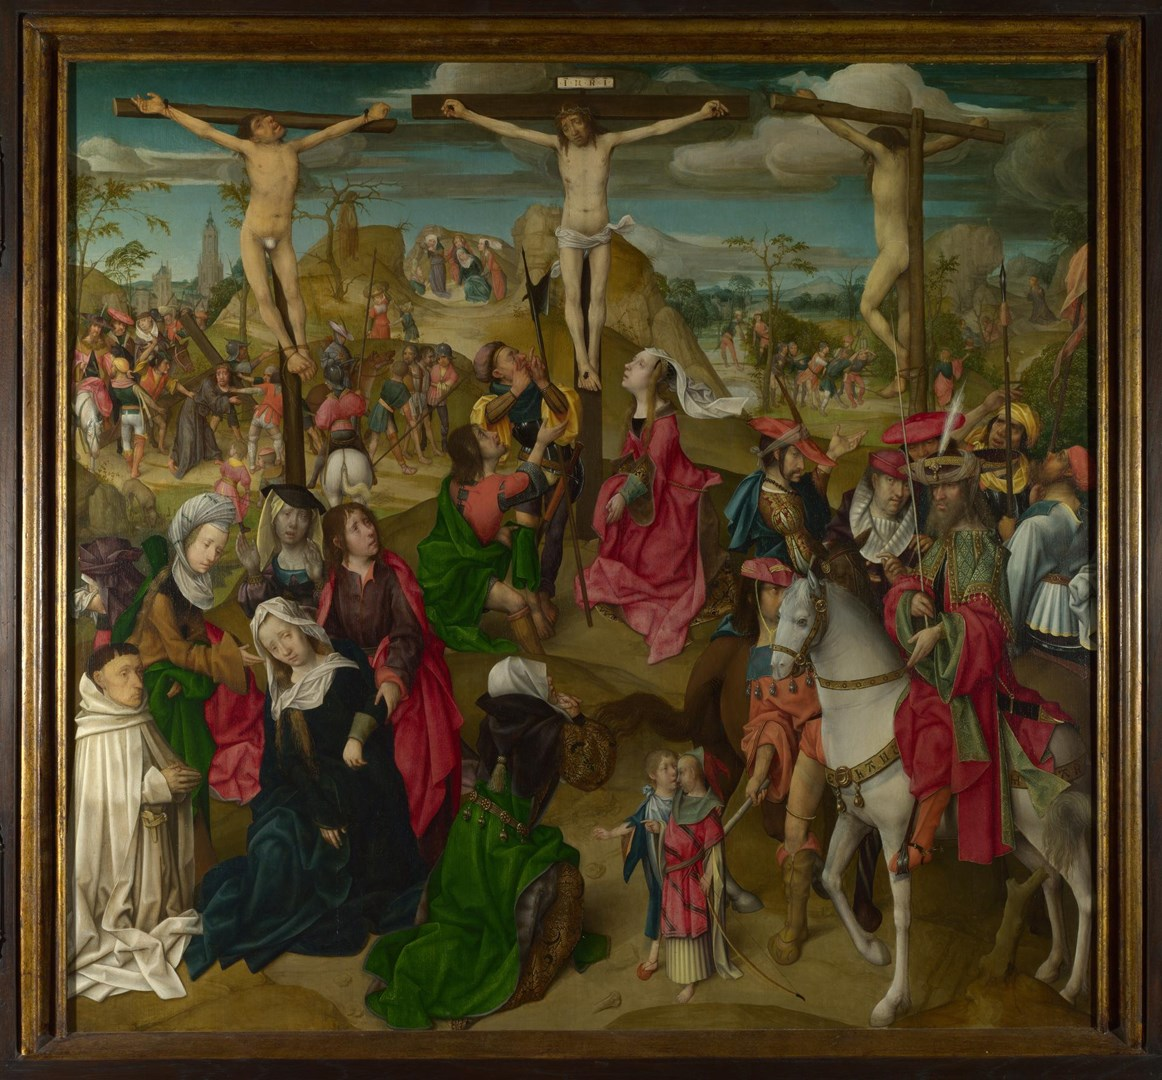 The Crucifixion: Central Panel by Master of Delft